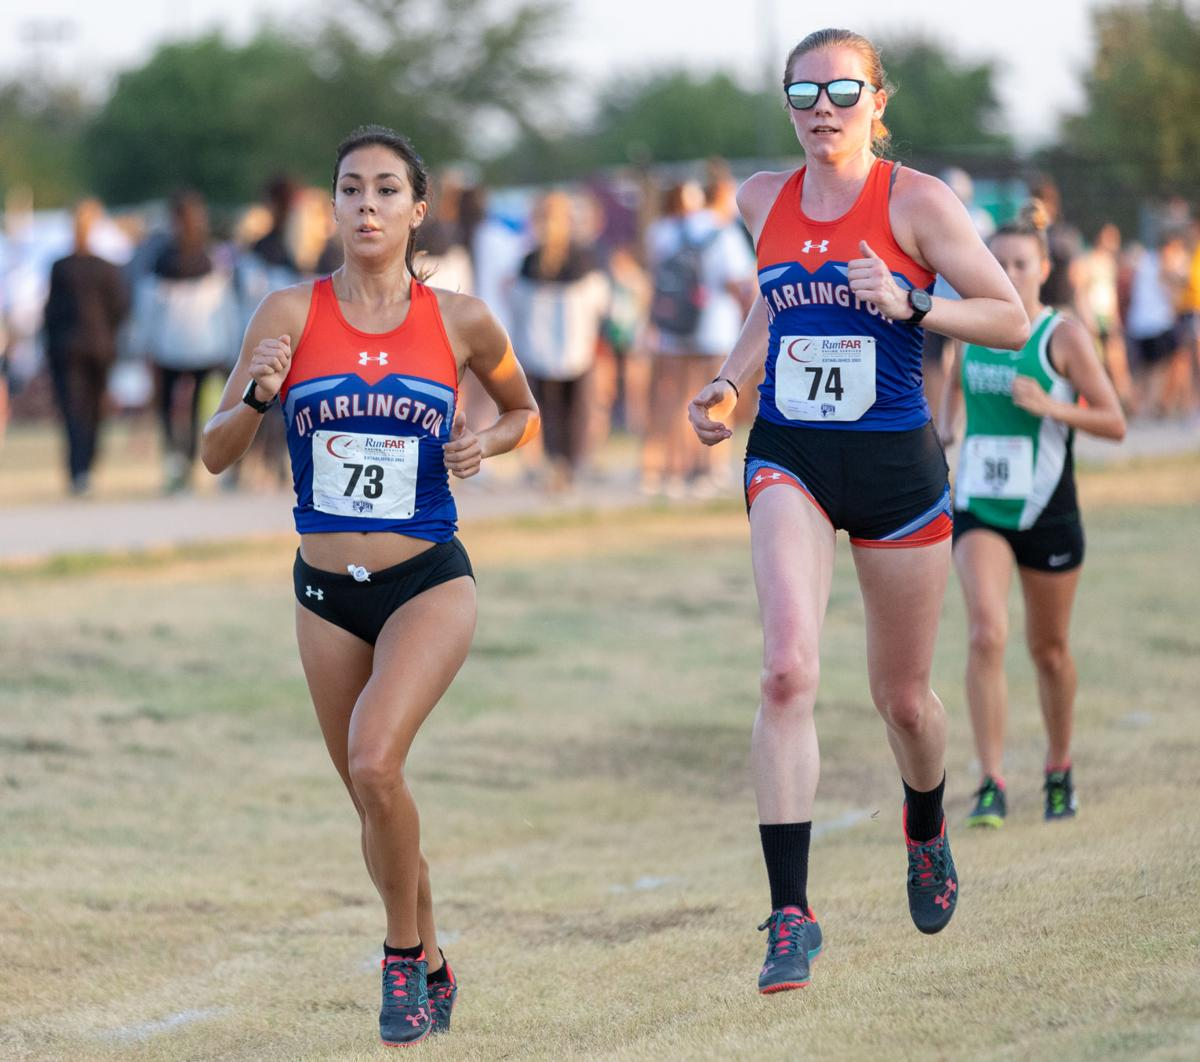 Women's cross-country wins team title while Domangue takes men's crown in Gerald Richey Invitational